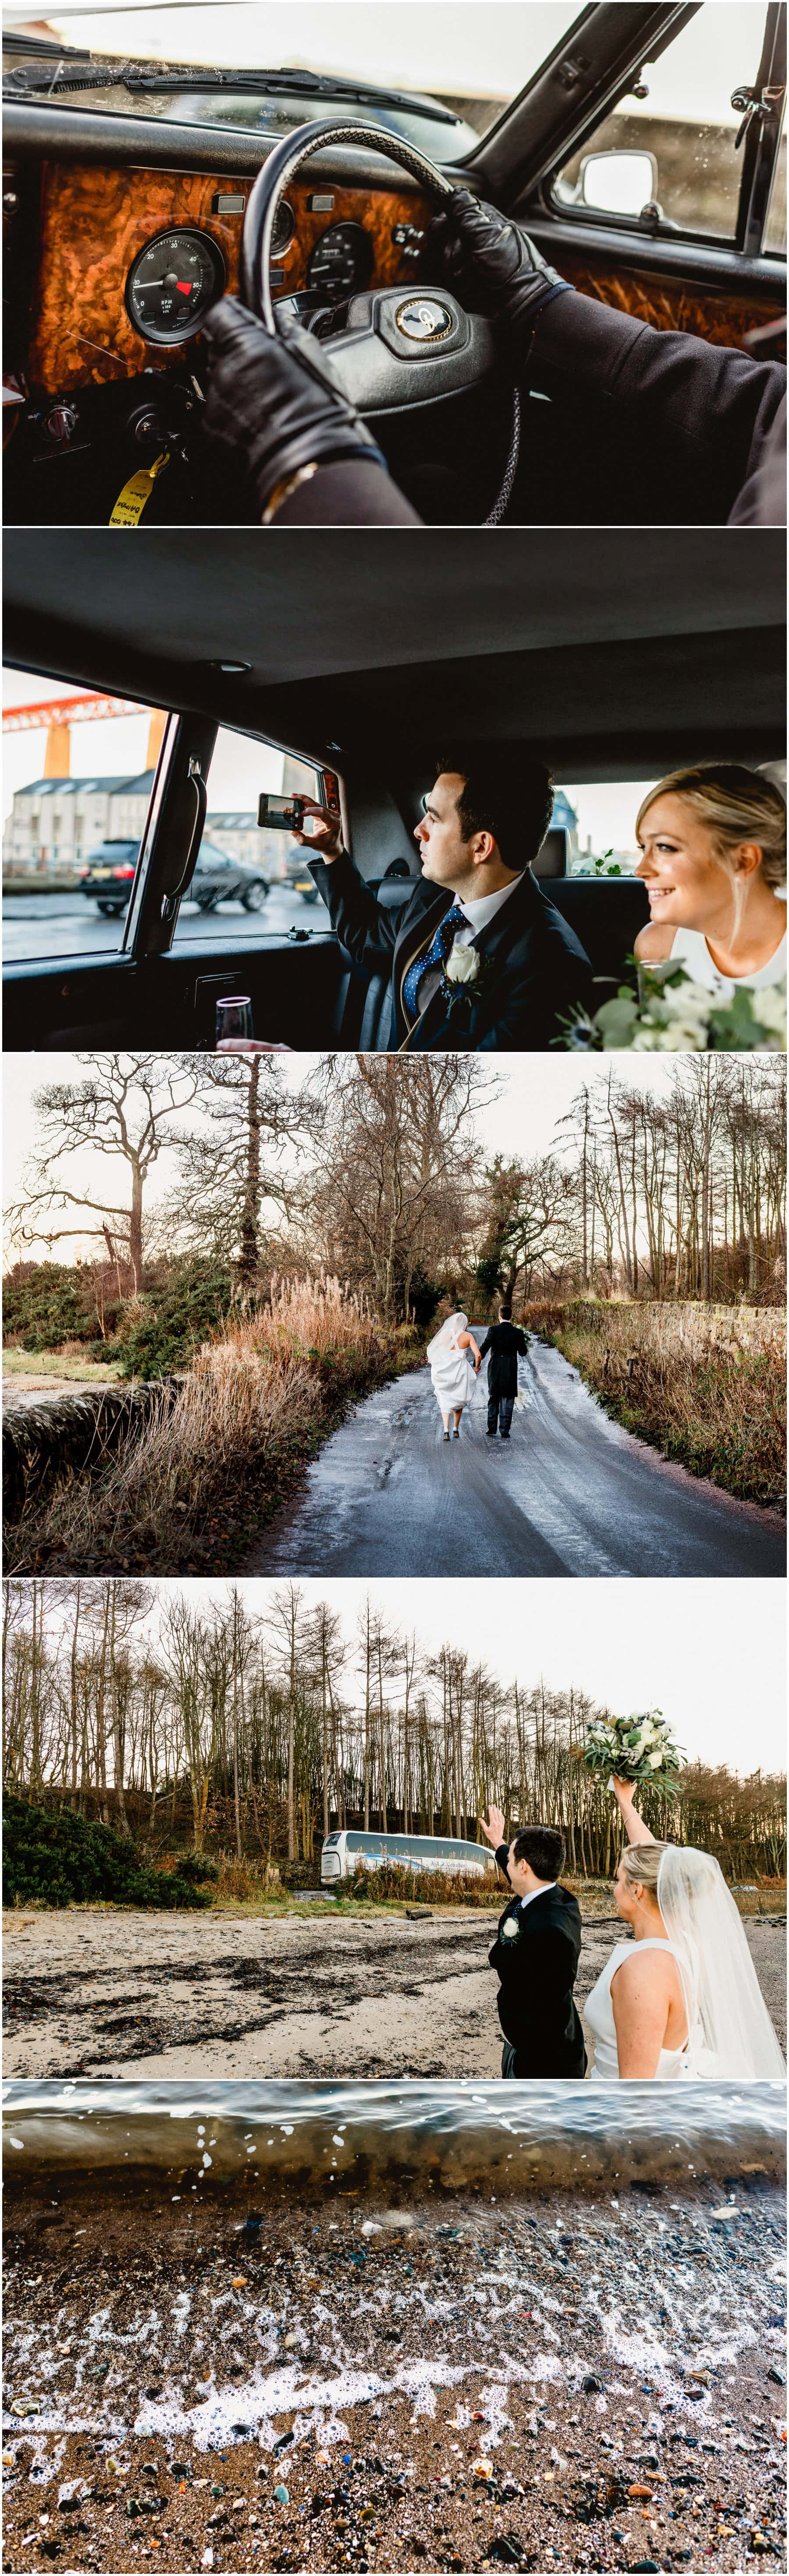 Bride and groom heading towards beach in South Queensferry on cold December day, bride in Jimmy Choo's walking on icy roads with groom at her side.